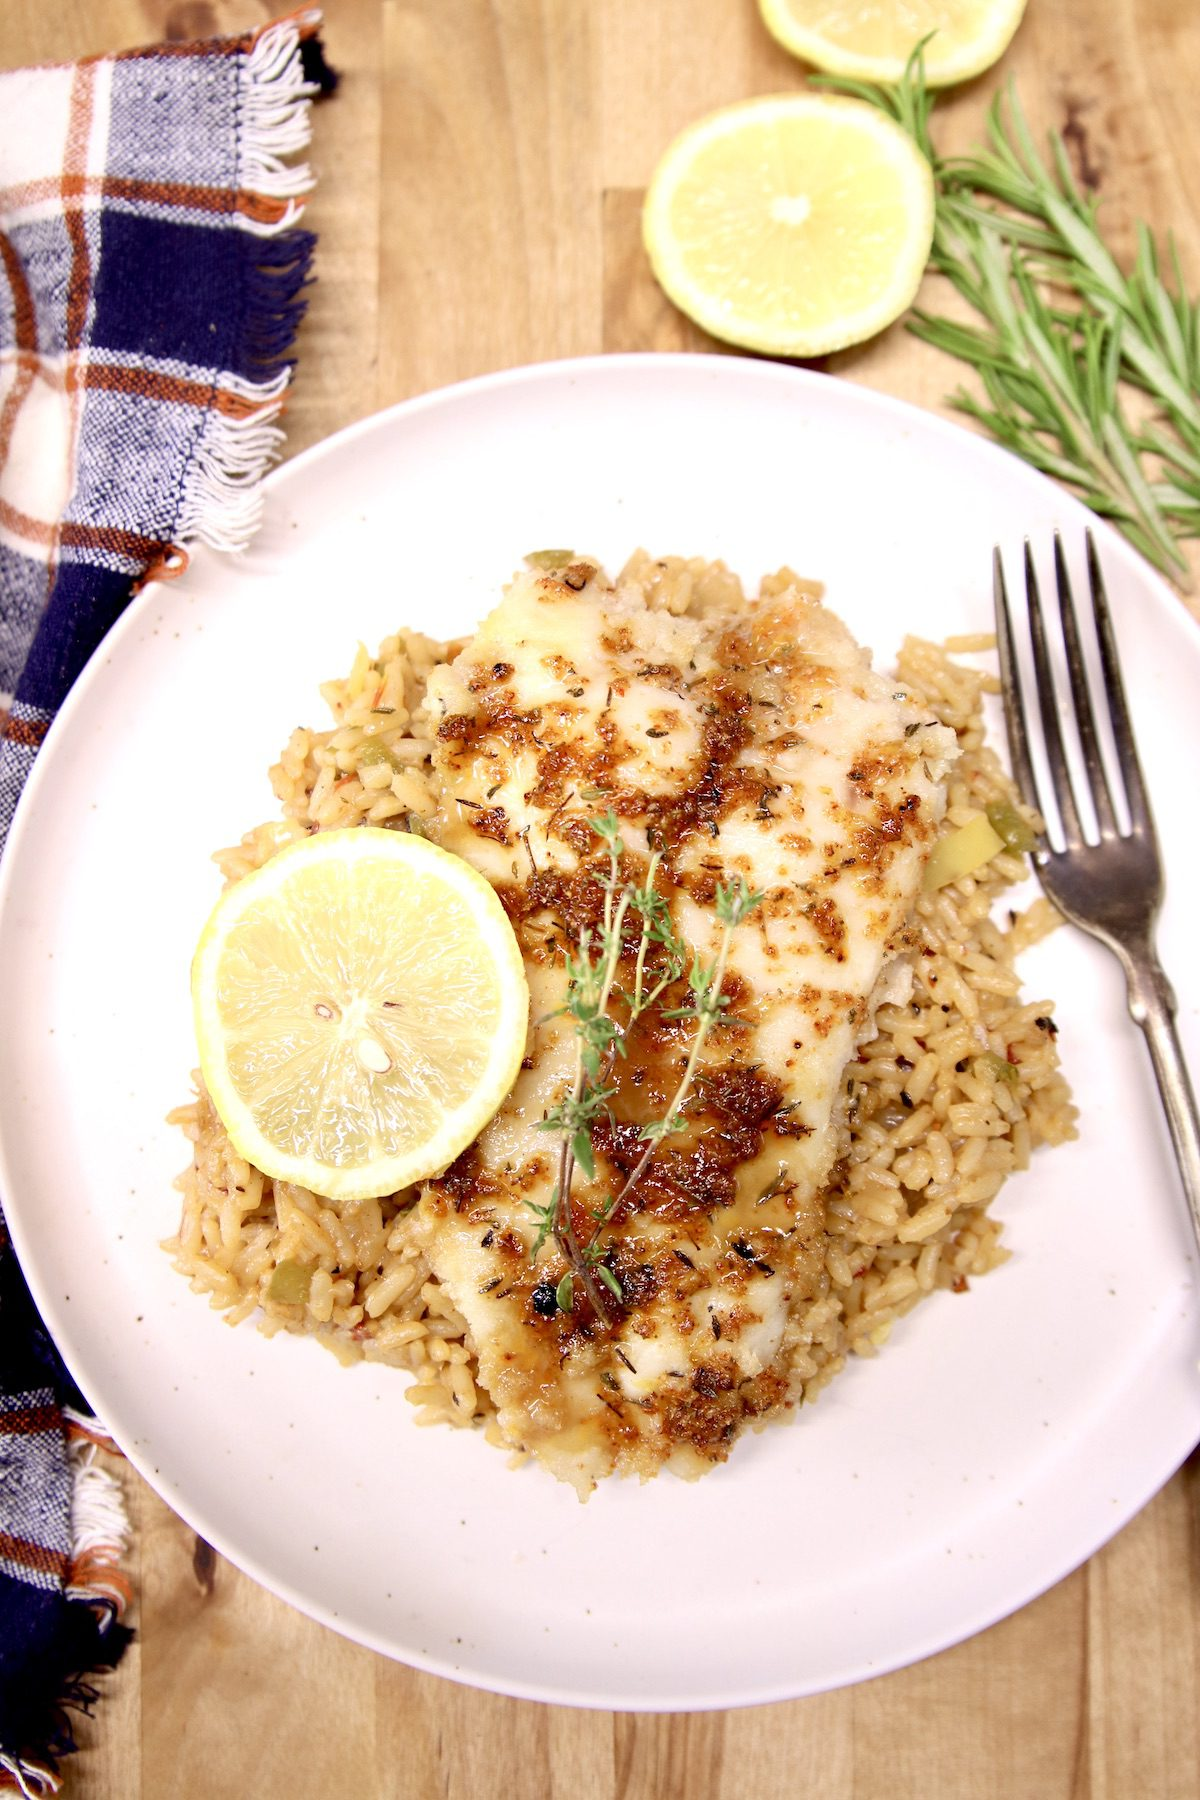 Grilled Catfish Filets over rice with lemon and herb garnish